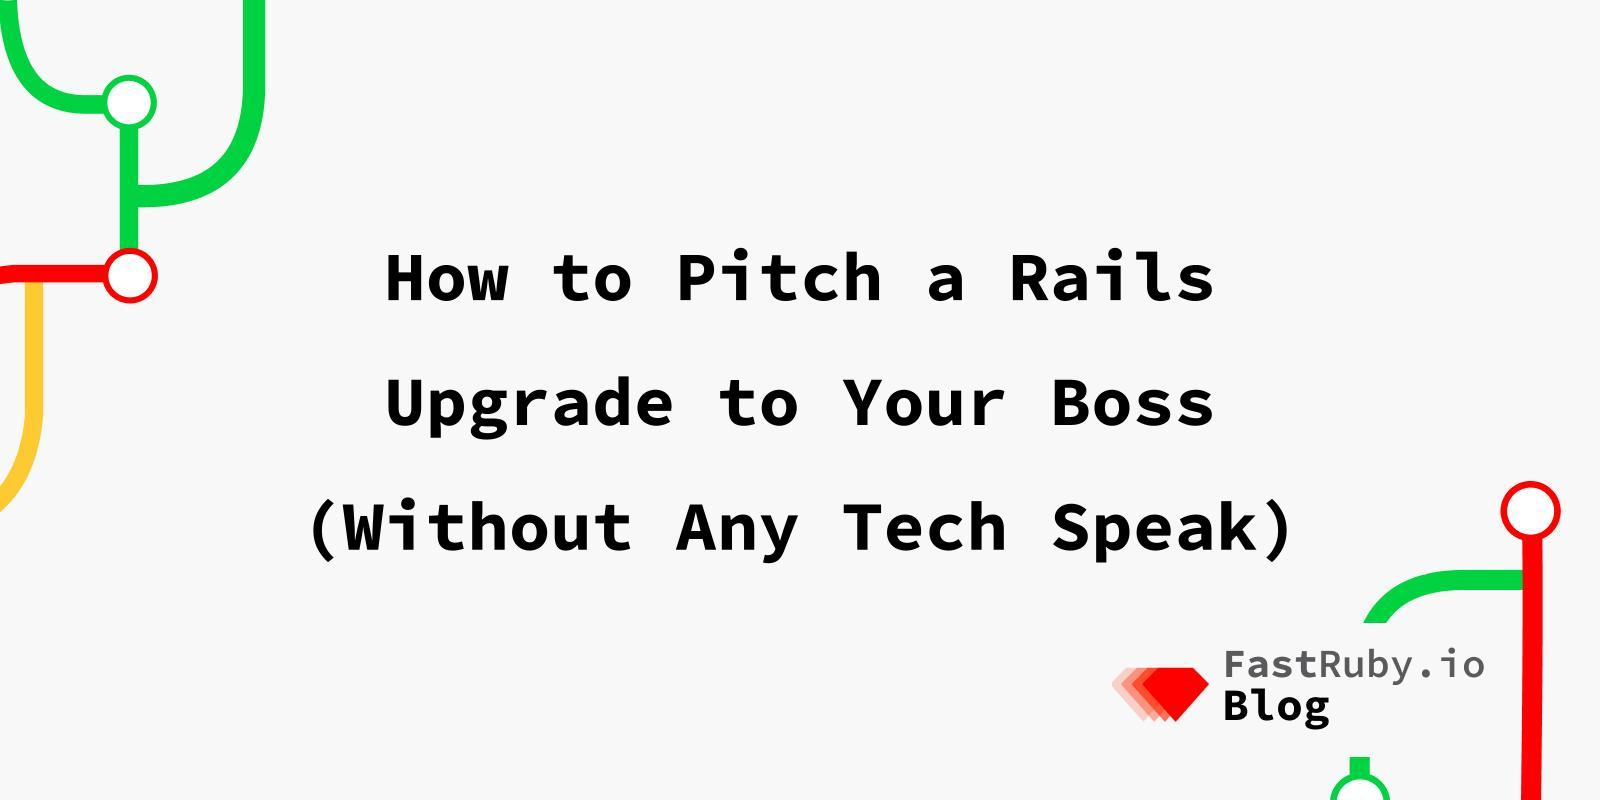 How to Pitch a Rails Upgrade to Your Boss (Without Any Tech Speak)